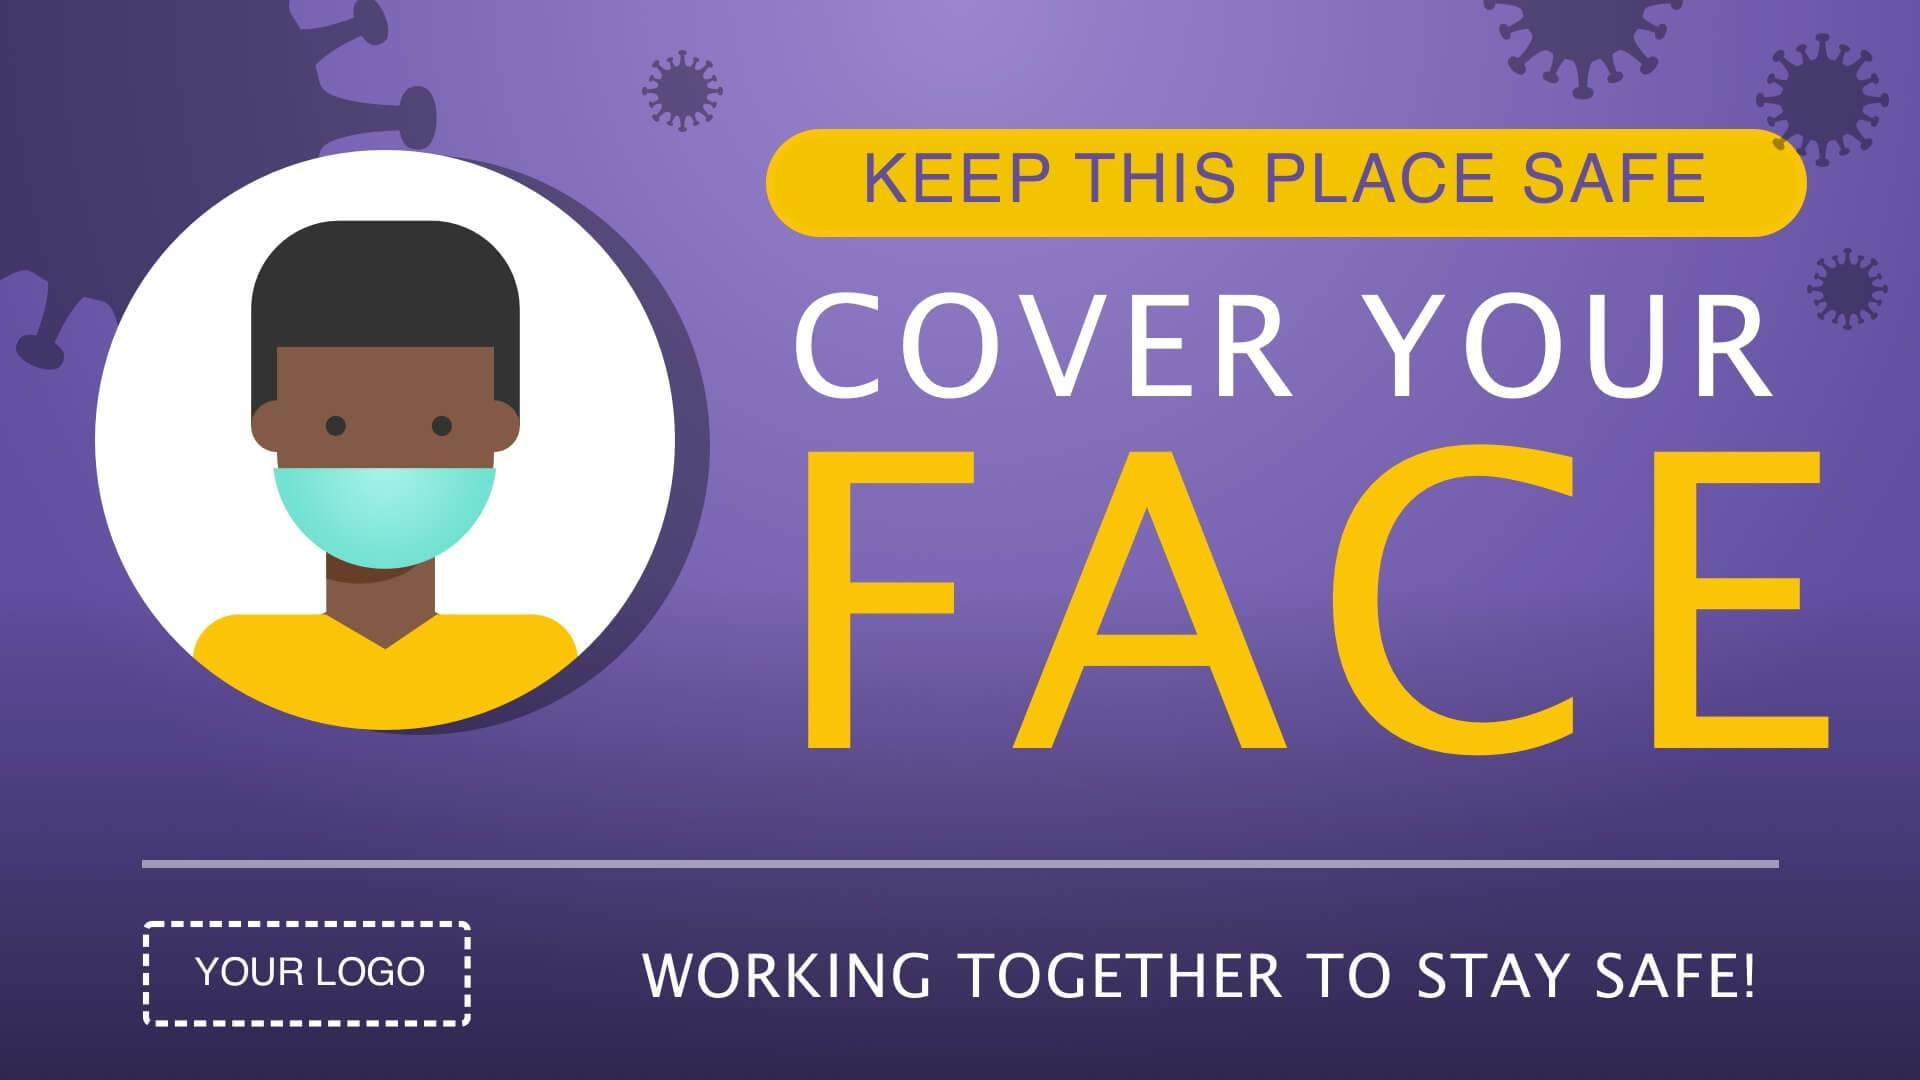 Campaign Cover Your Face Digital Signage Template